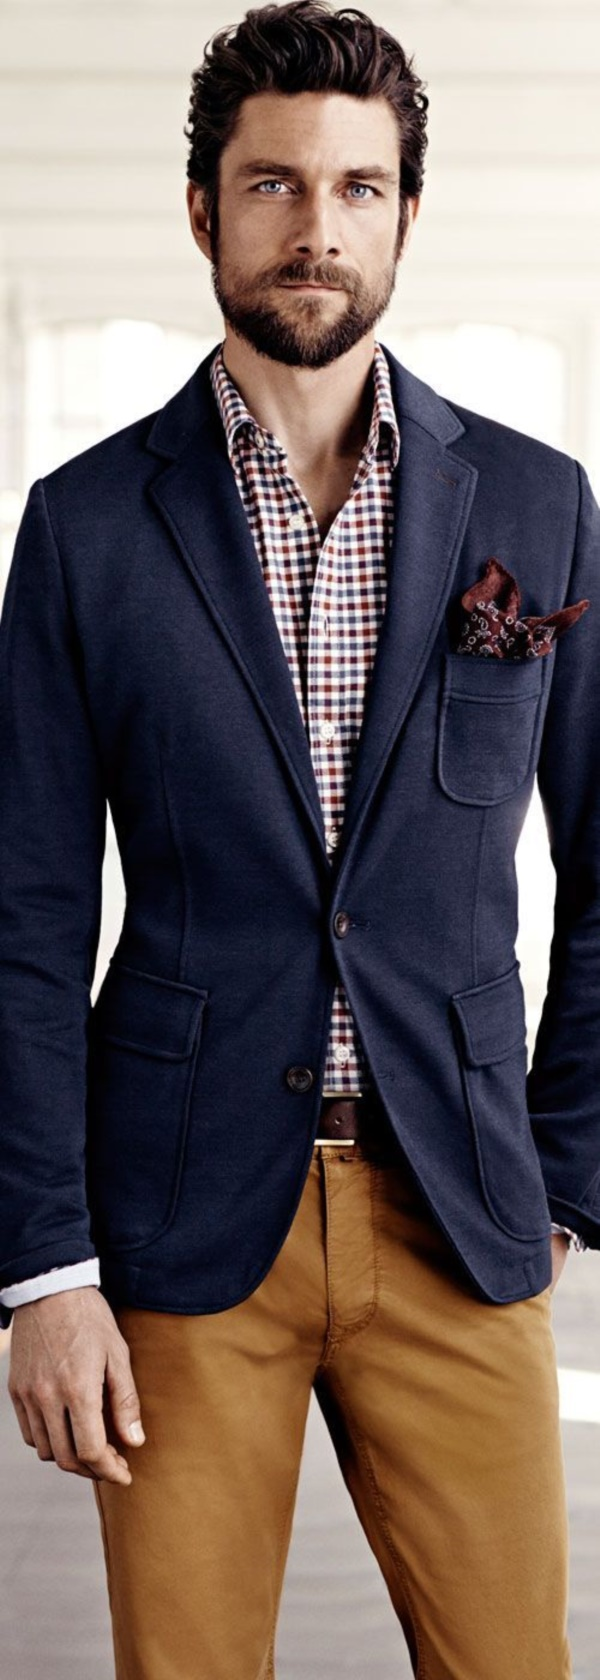 stylish outfits for men0031